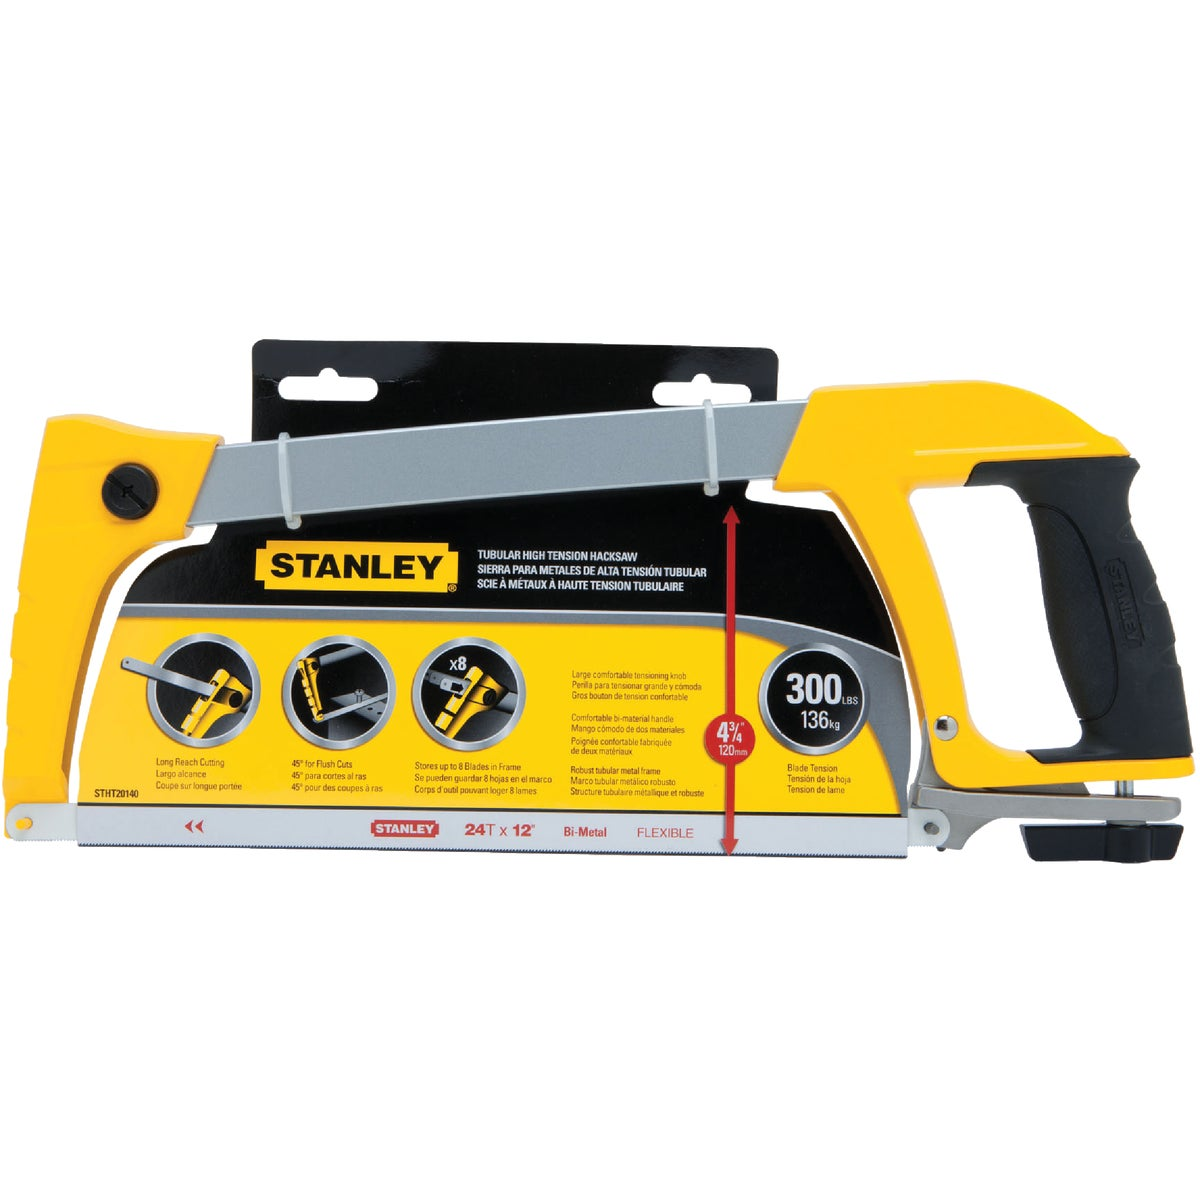 "12"" HIGH TENSION HACKSAW - STHT20140 by Stanley Tools"